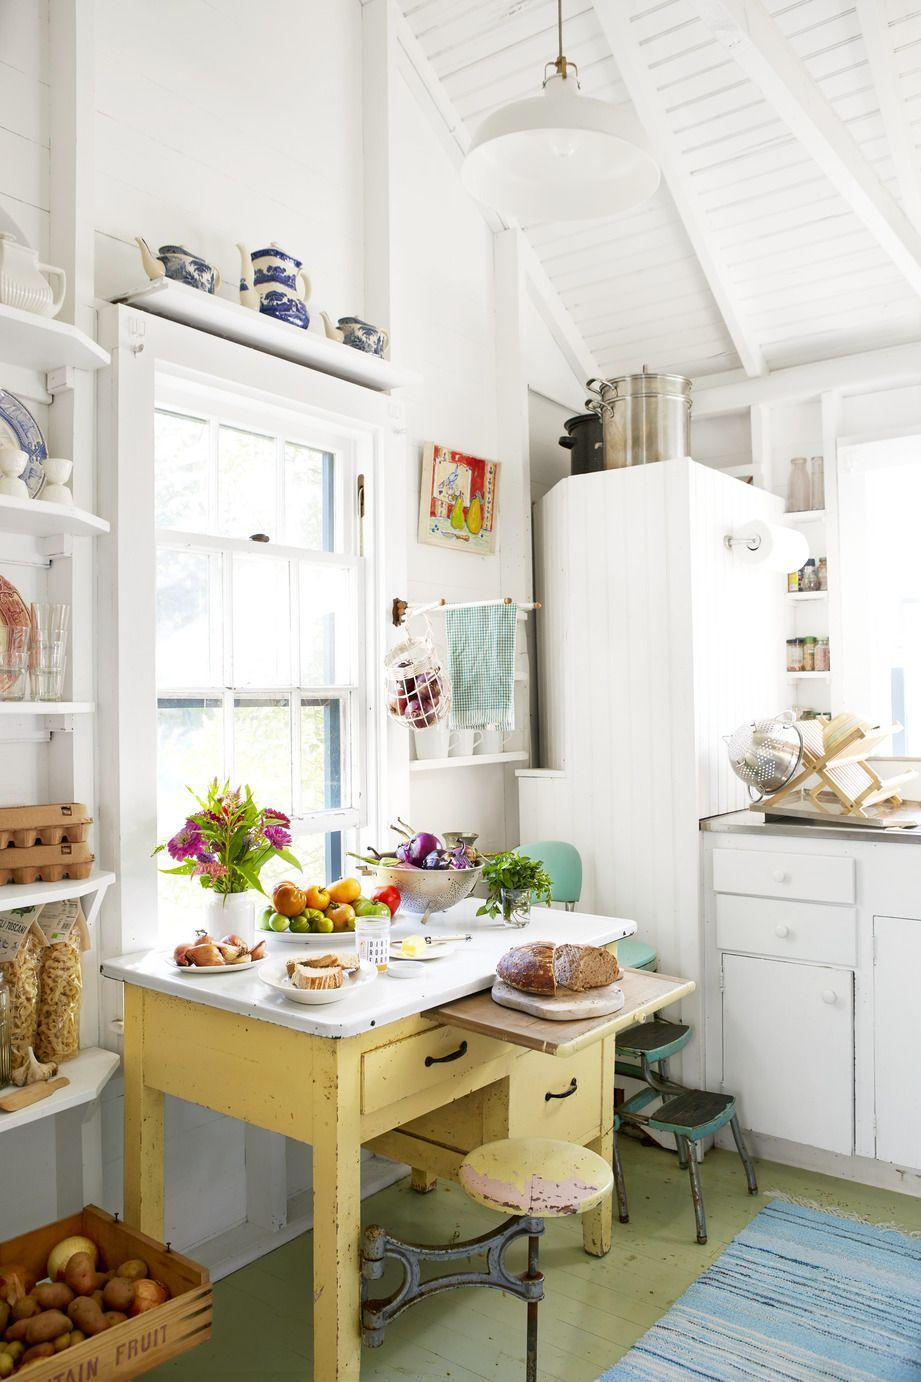 <p>White walls and cabinets make way for bright and chippy painted floors and furniture, like this antique table that serves as a quirky work space. Colorful accessories stand out on built-in shelves. The overall mismatch quality solidifies the quaint cottage aesthetic.</p>